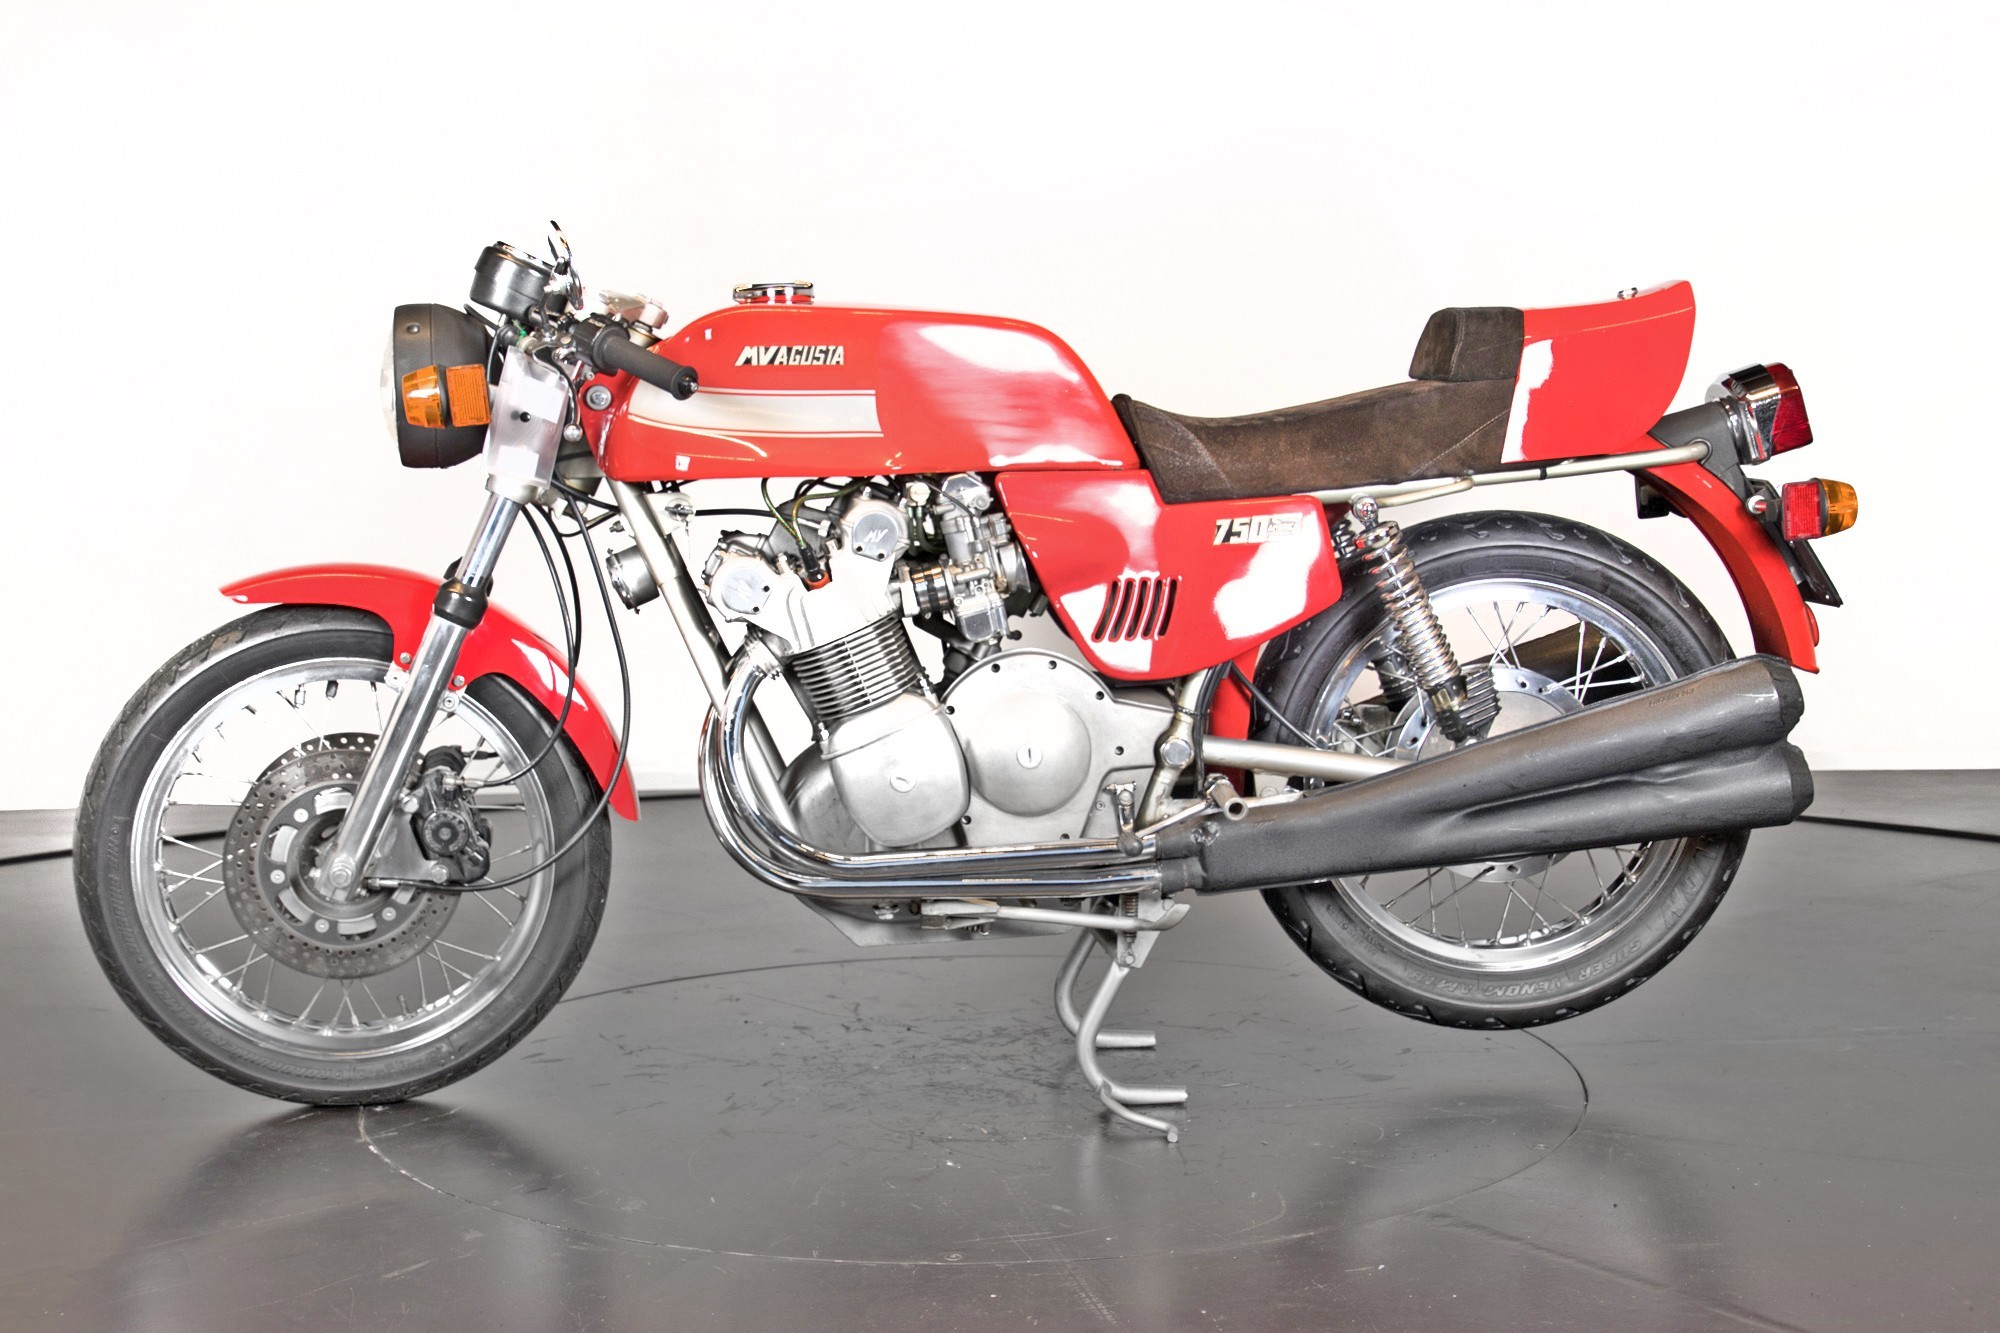 Vintage (used) motorcycles' values: Mv Agusta 750 America, approx. $112,703. for sale